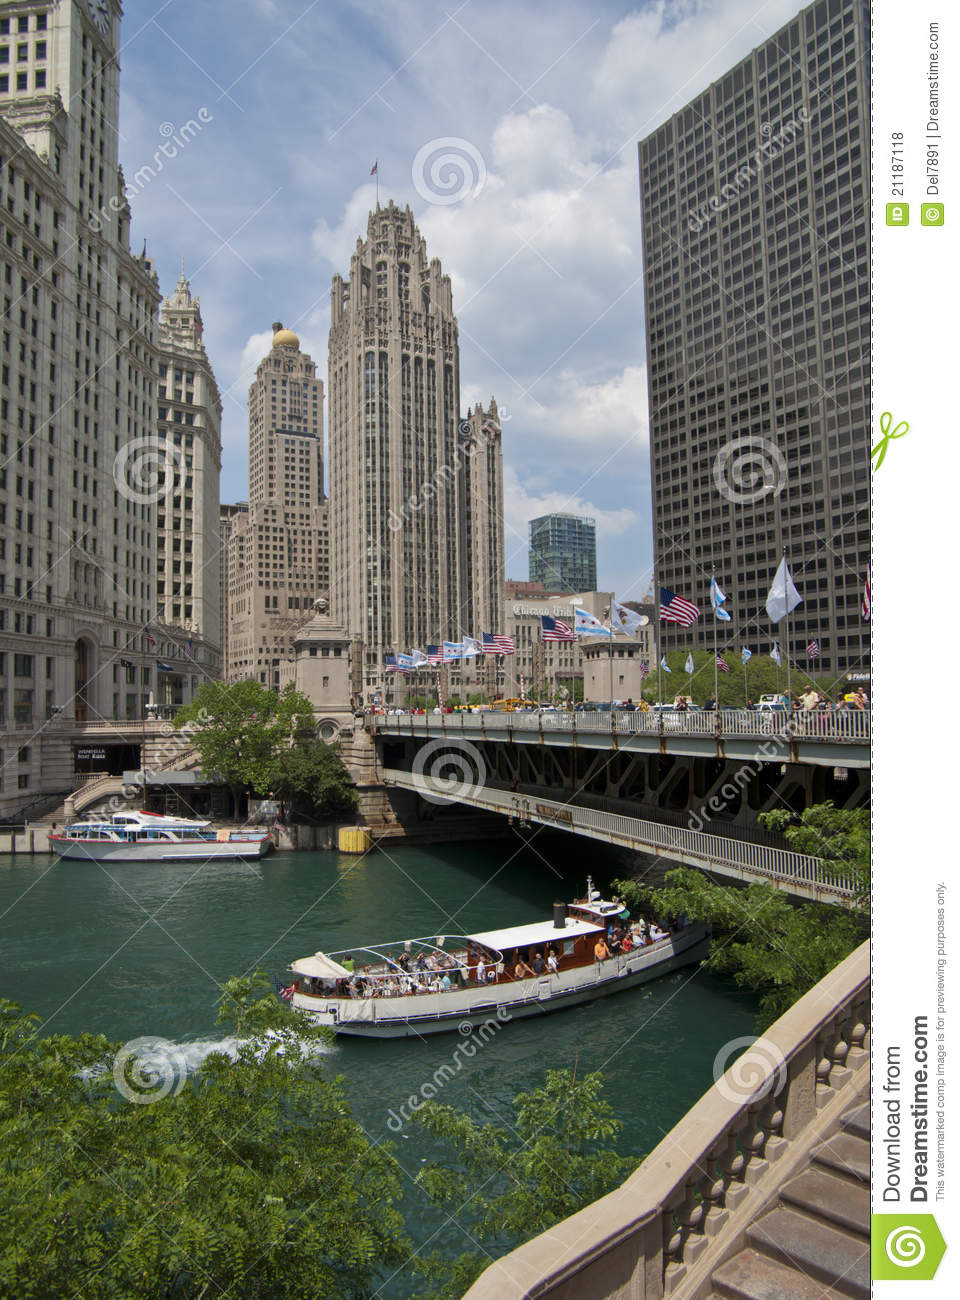 Boat Ride on the Chicago River